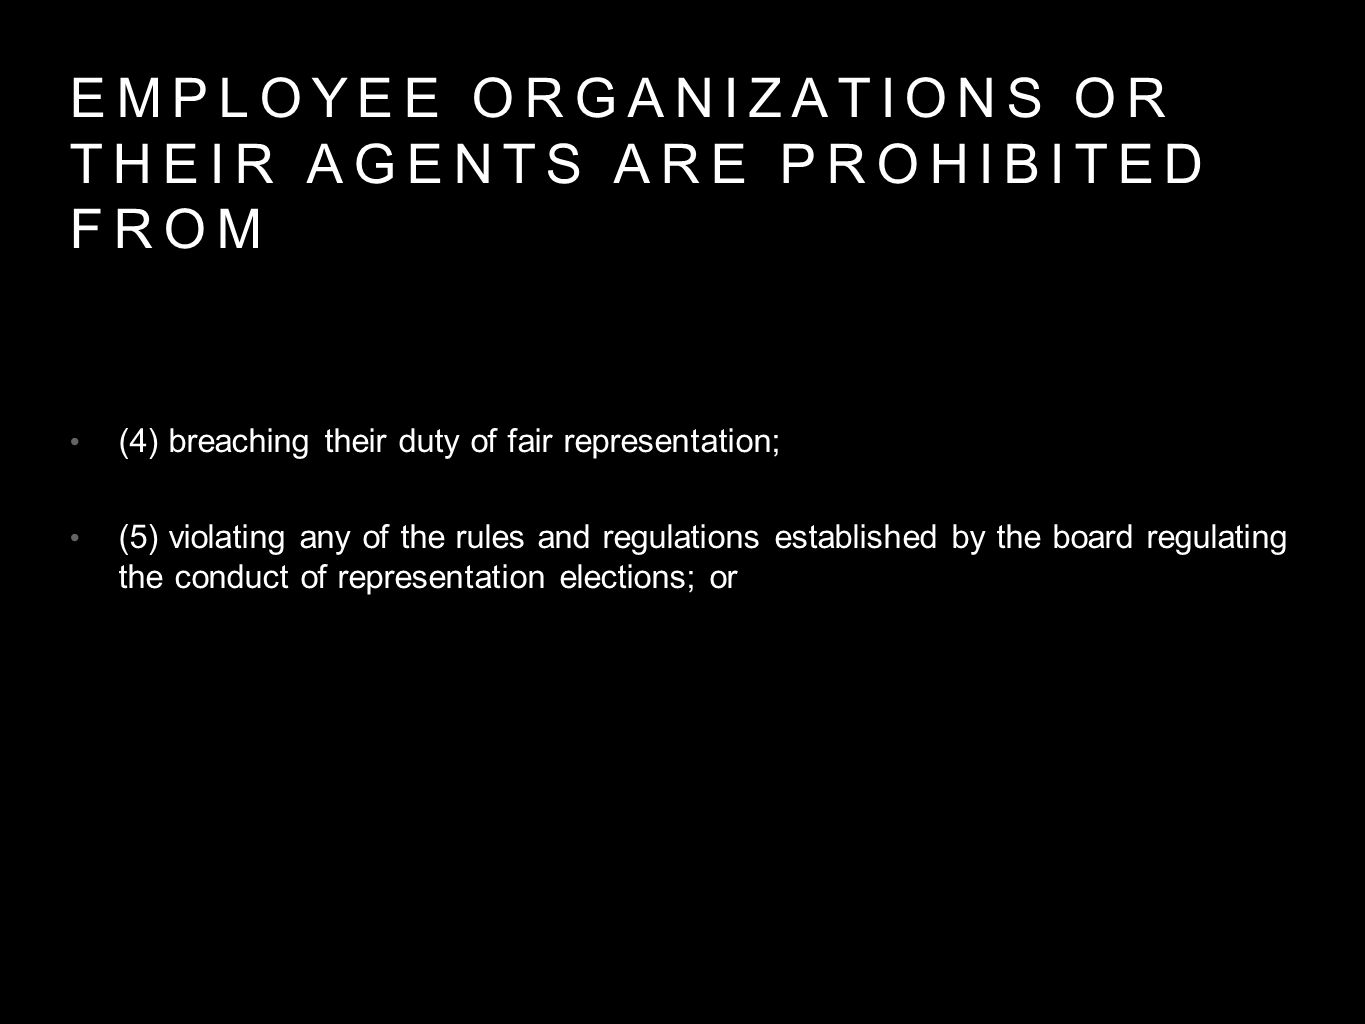 EMPLOYEE ORGANIZATIONS OR THEIR AGENTS ARE PROHIBITED FROM (4) breaching their duty of fair representation; (5) violating any of the rules and regulations established by the board regulating the conduct of representation elections; or